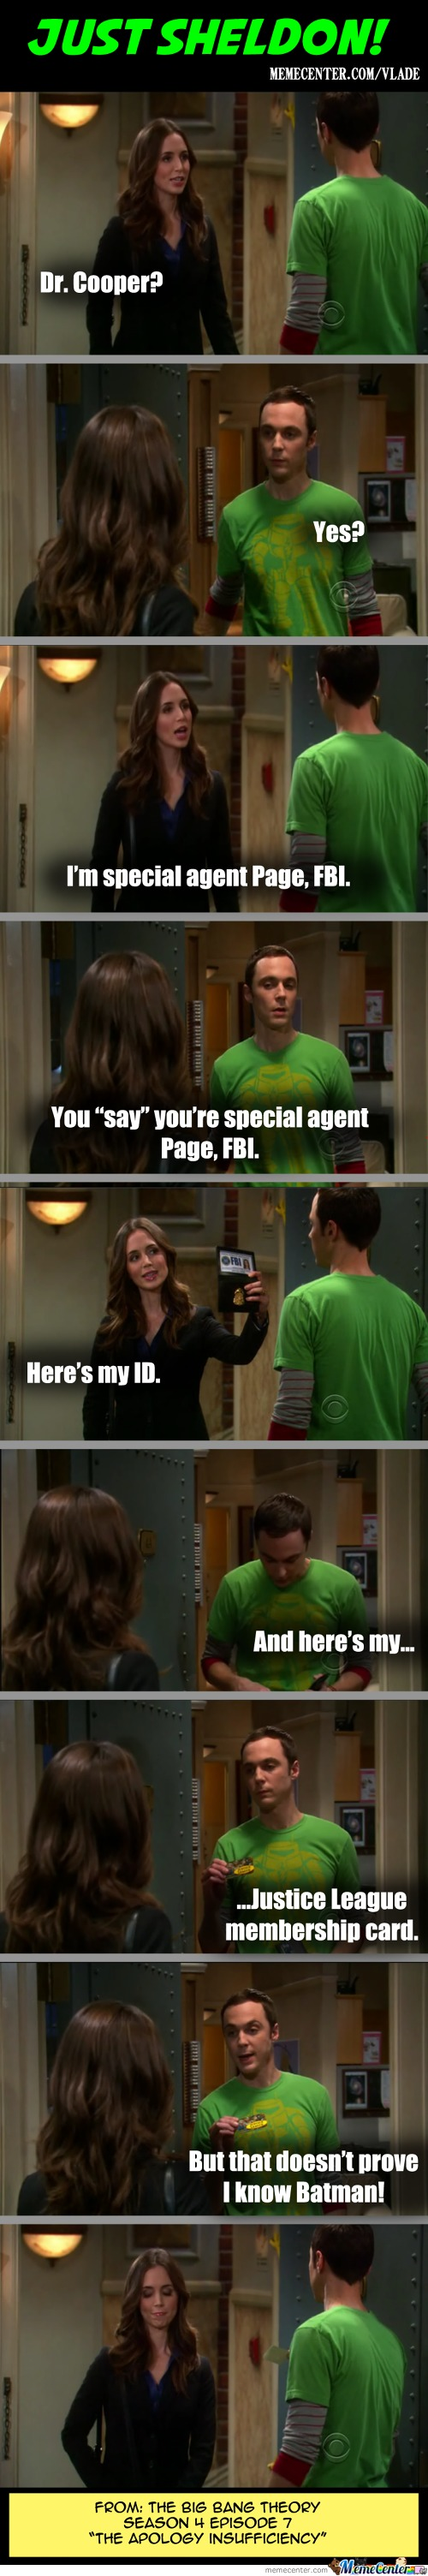 Just Sheldon!